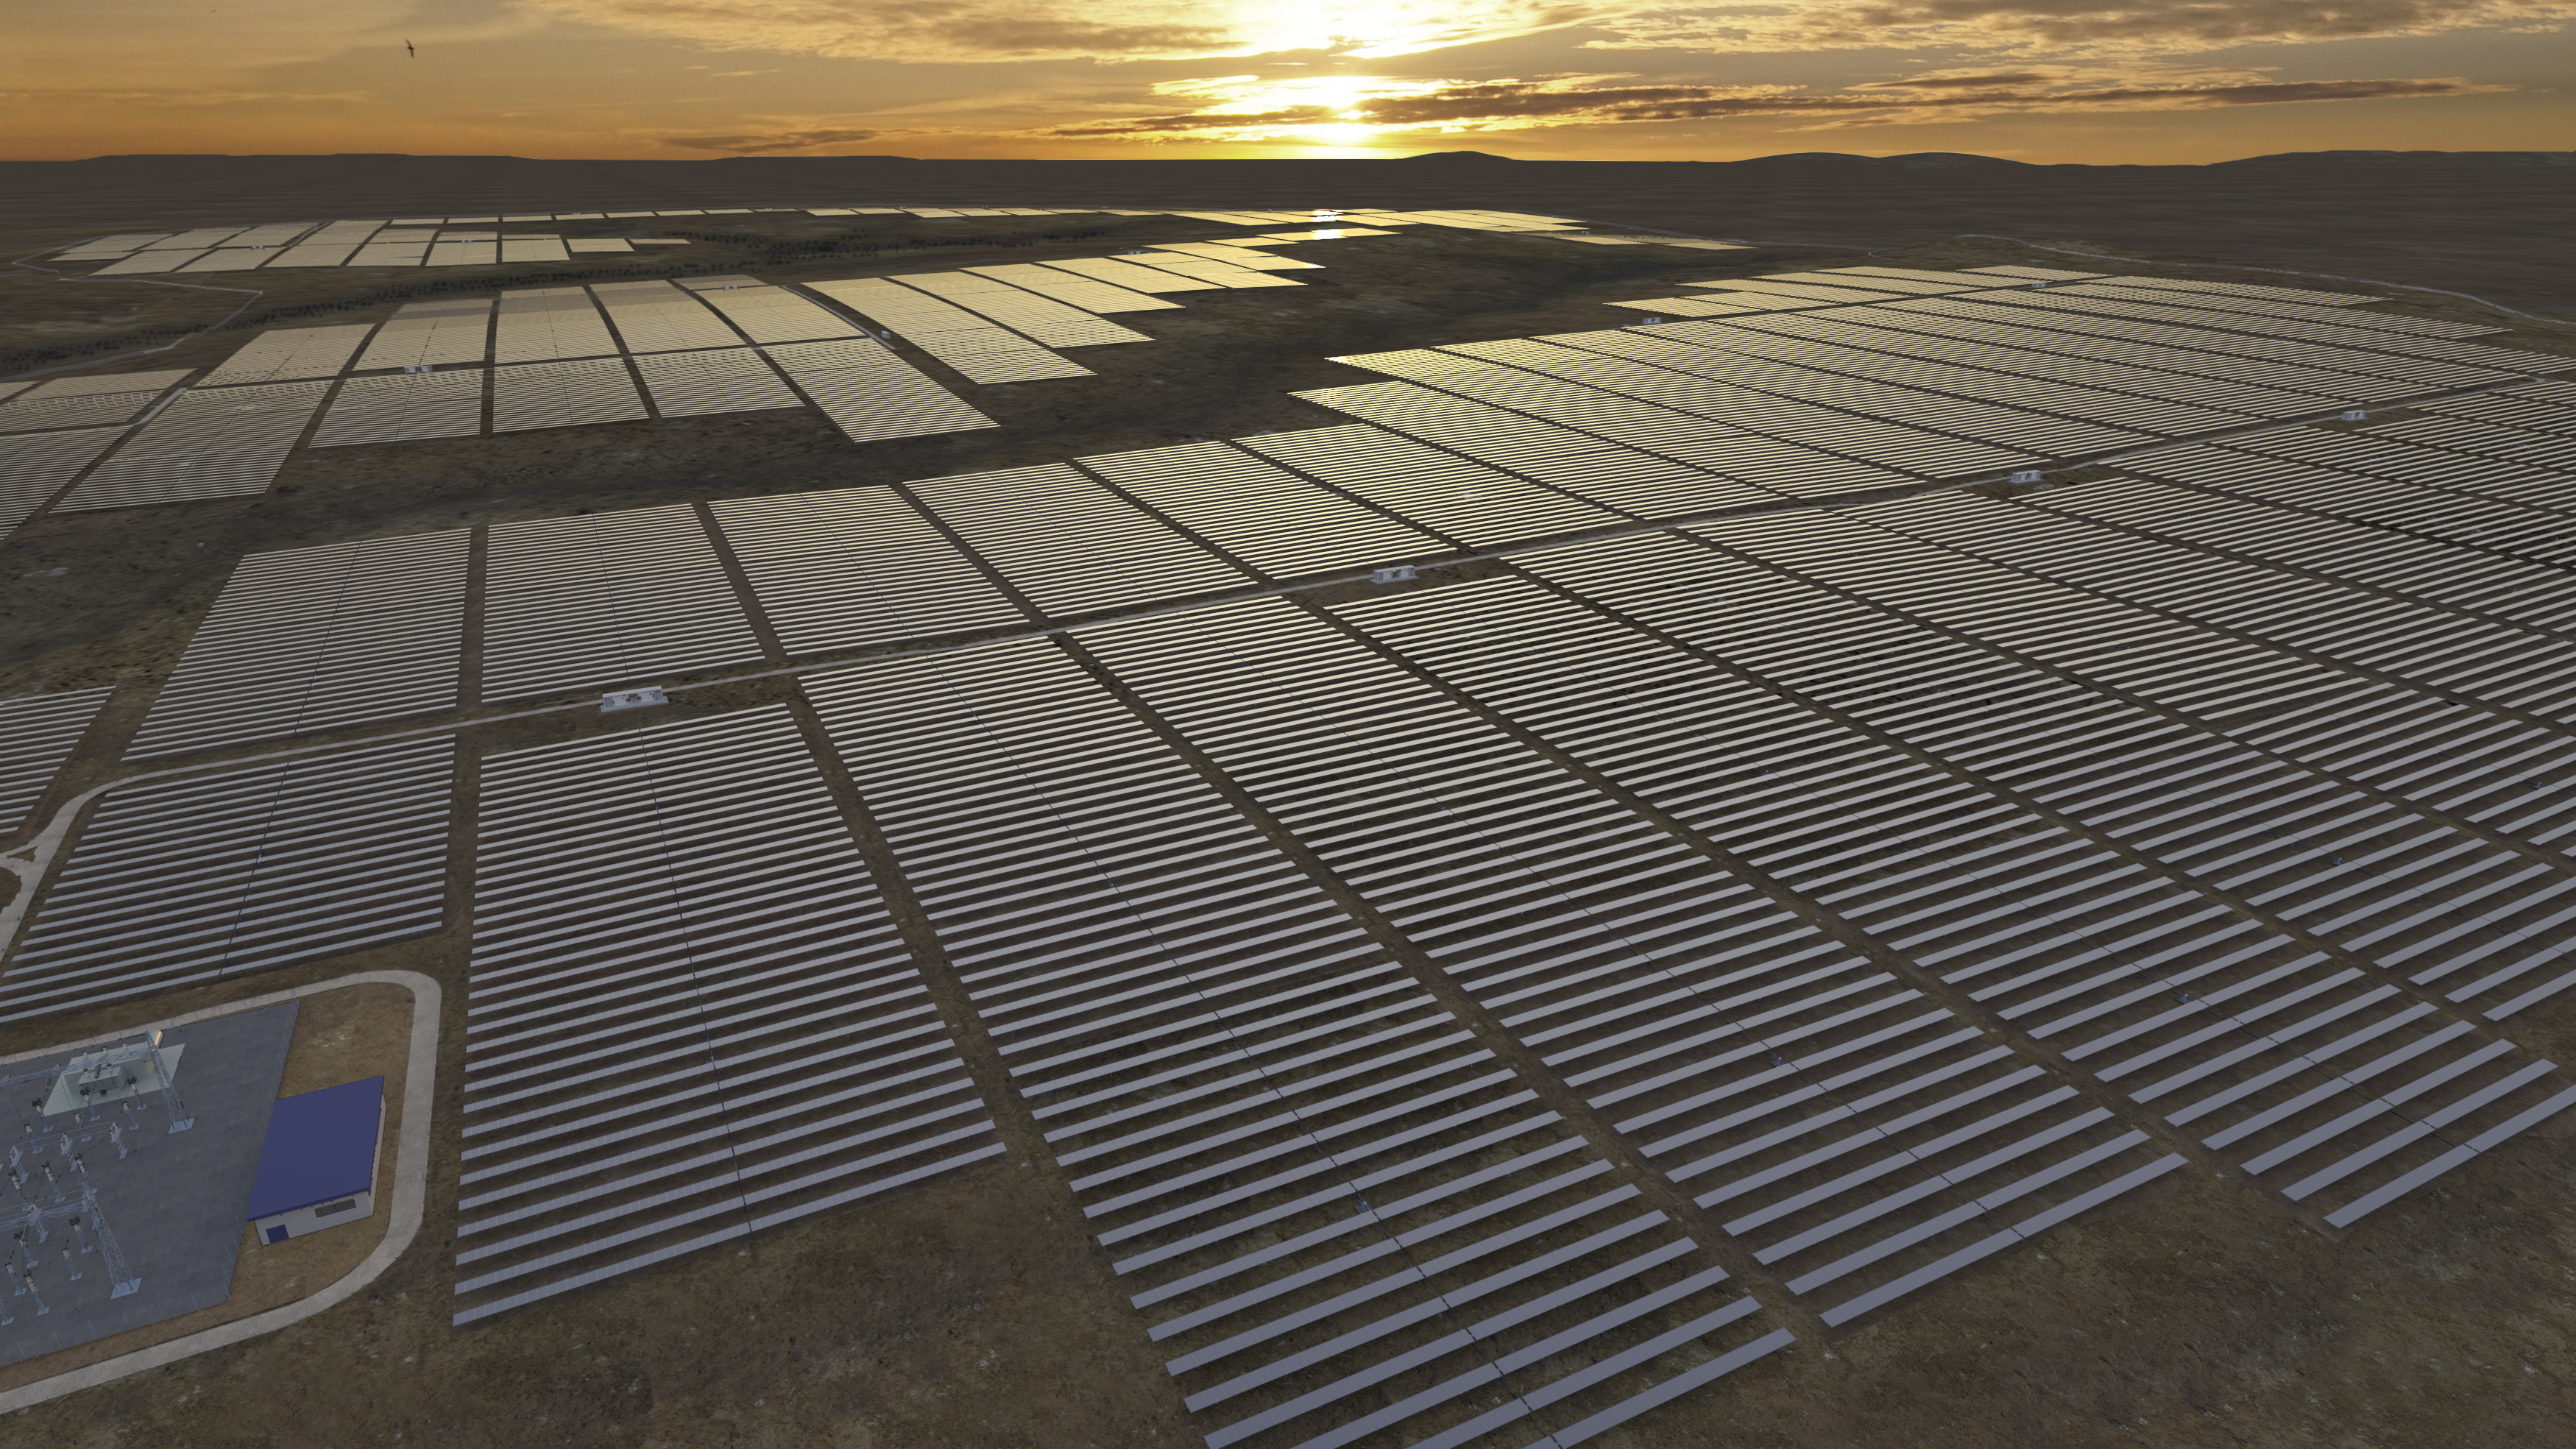 Lilyvale solar photovoltaic plant near Emerald will provide clean energy to 45,000 household